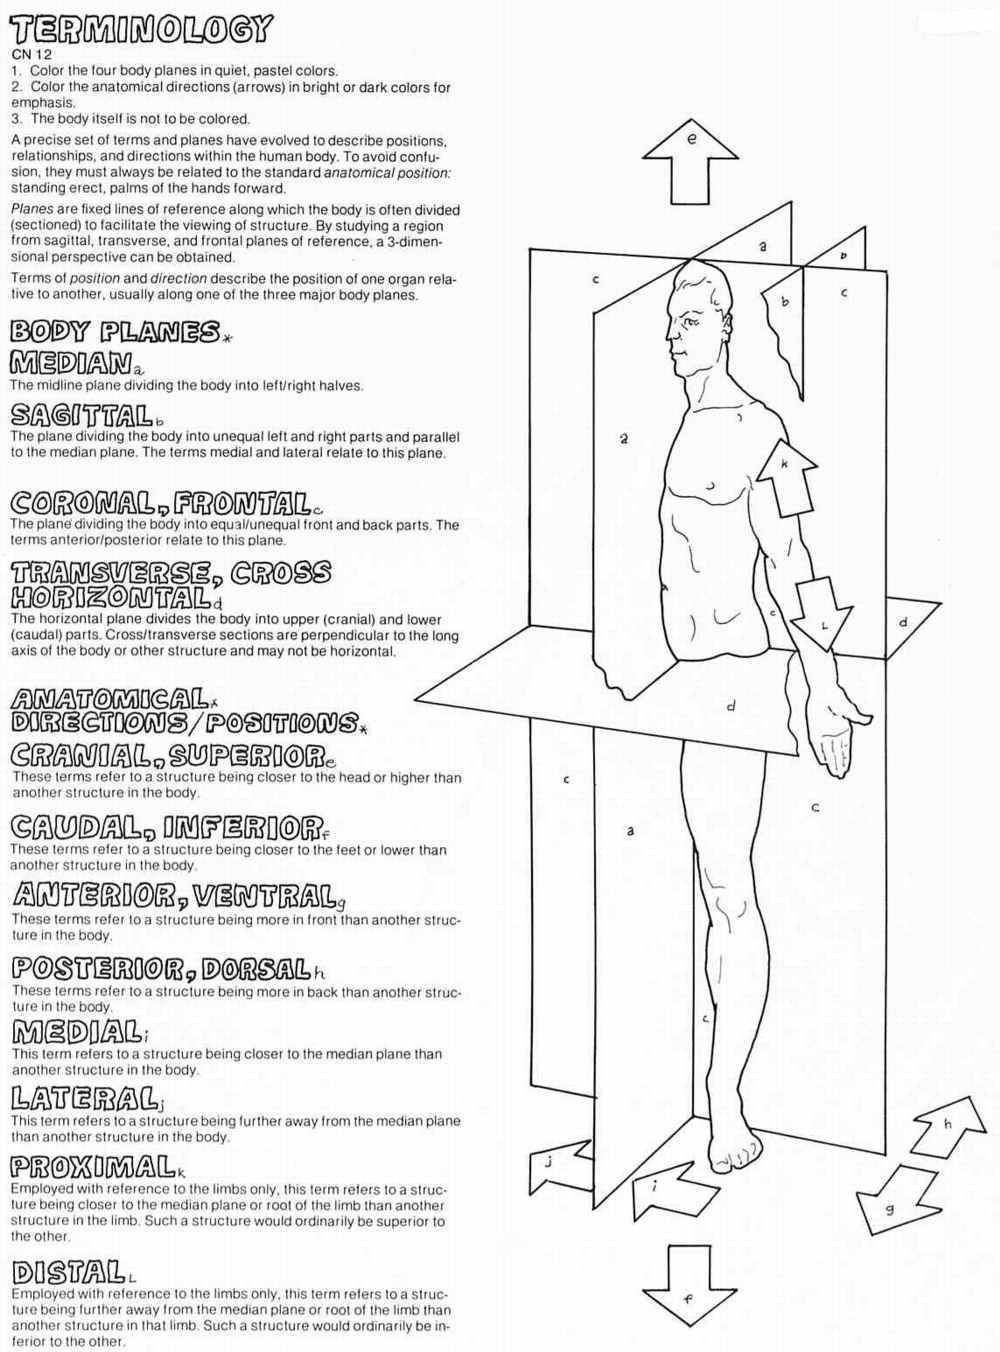 Human Body Systems Worksheet Answers Anatomical Directional Terms Of The Body In 2020 Body Systems Worksheets Human Body Systems Body Systems